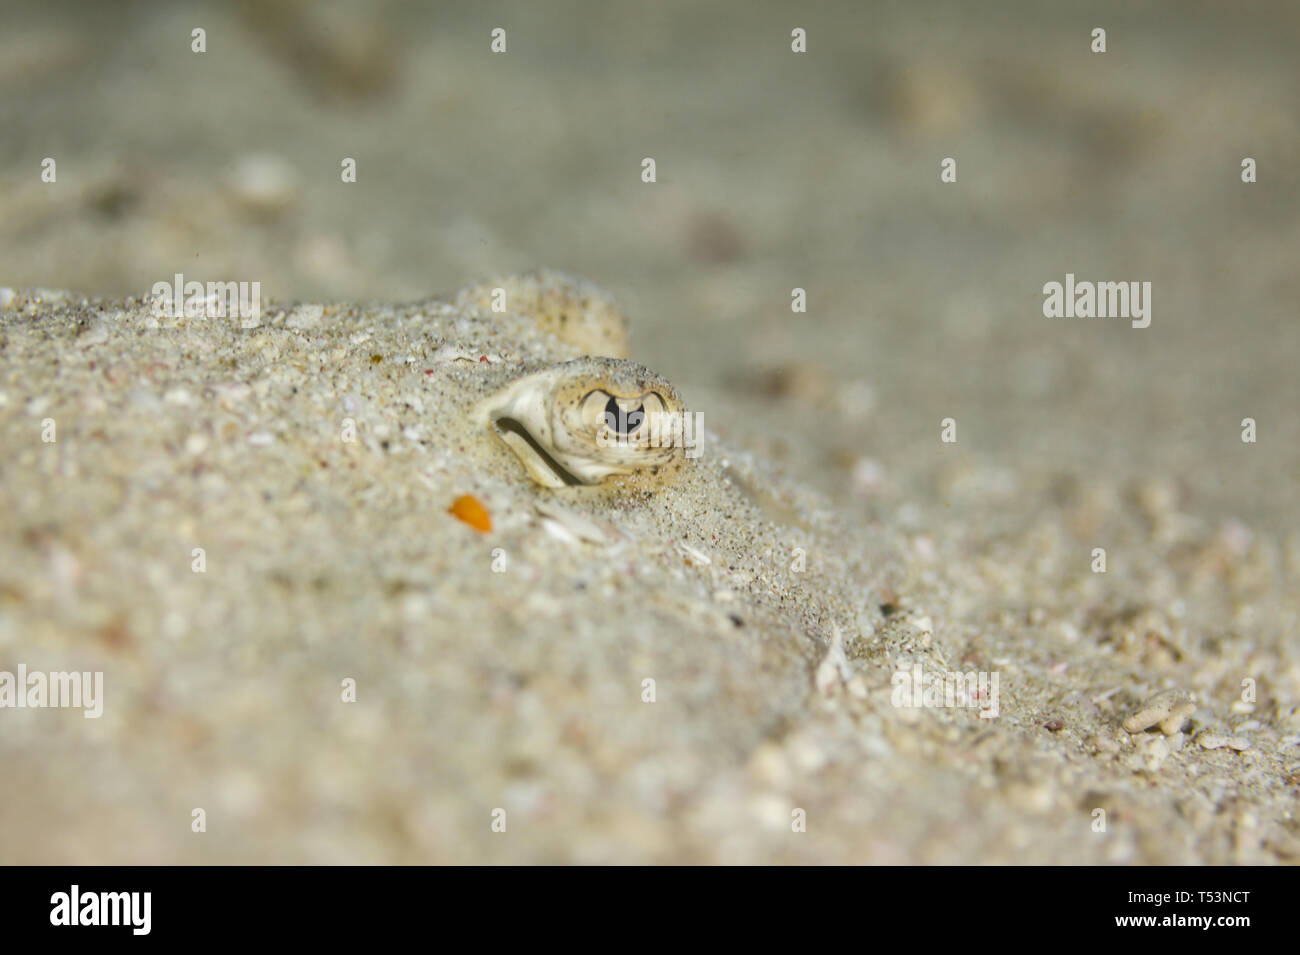 Bothus ocellatus flat, left eyed Flounder camouflaged in sand shows two eyes only - Stock Image